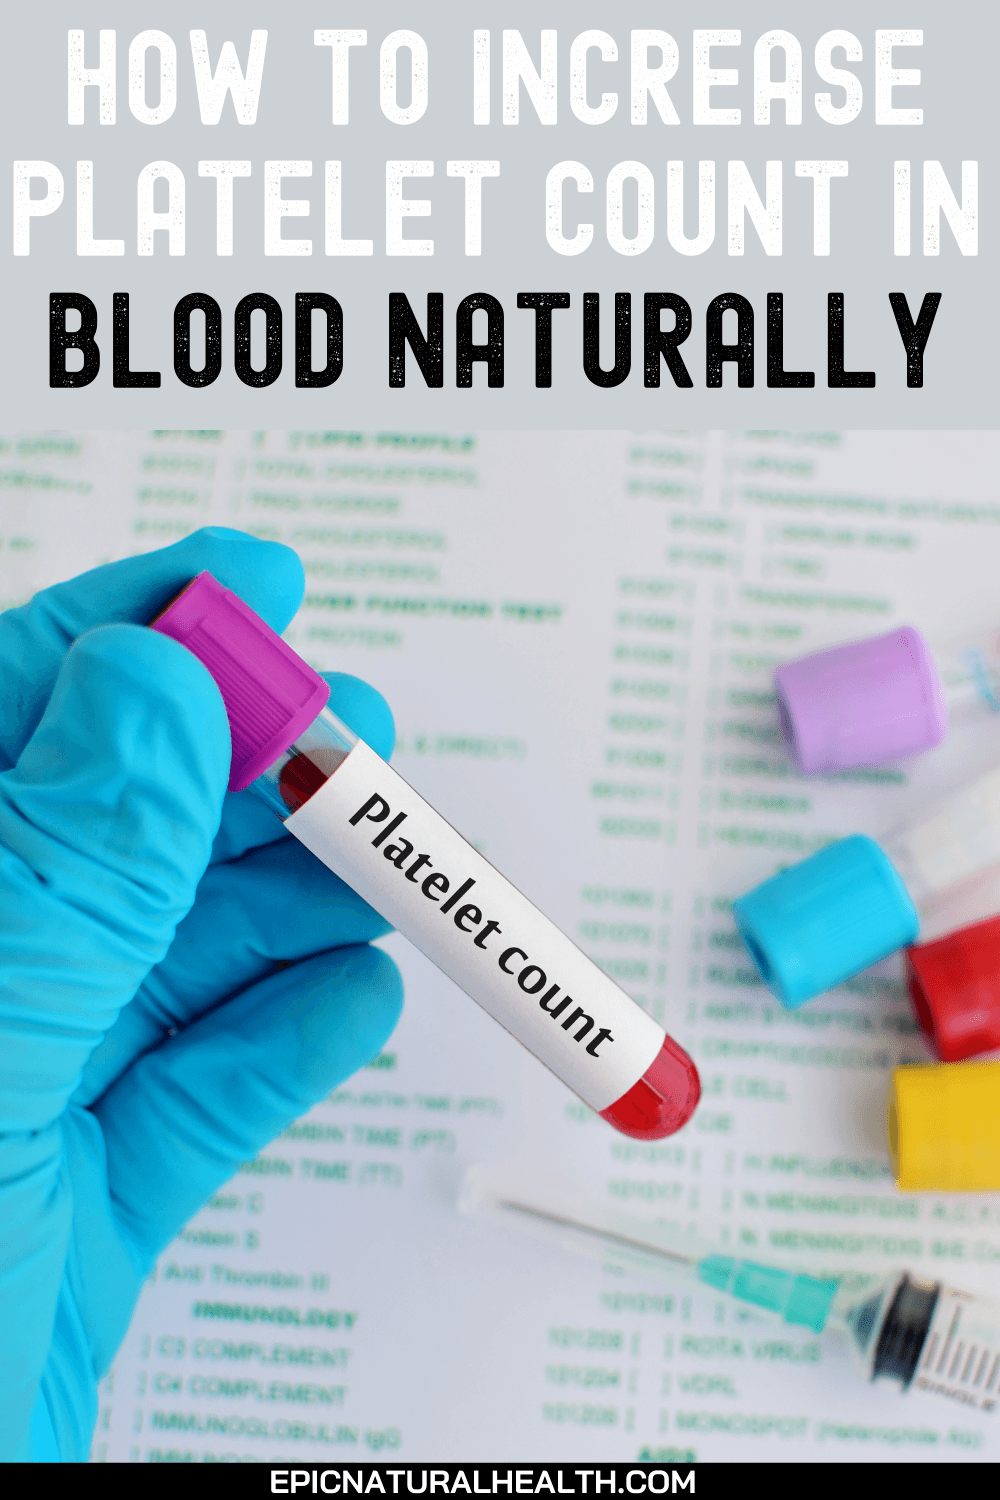 How to Increase Platelet Count in Blood Naturally